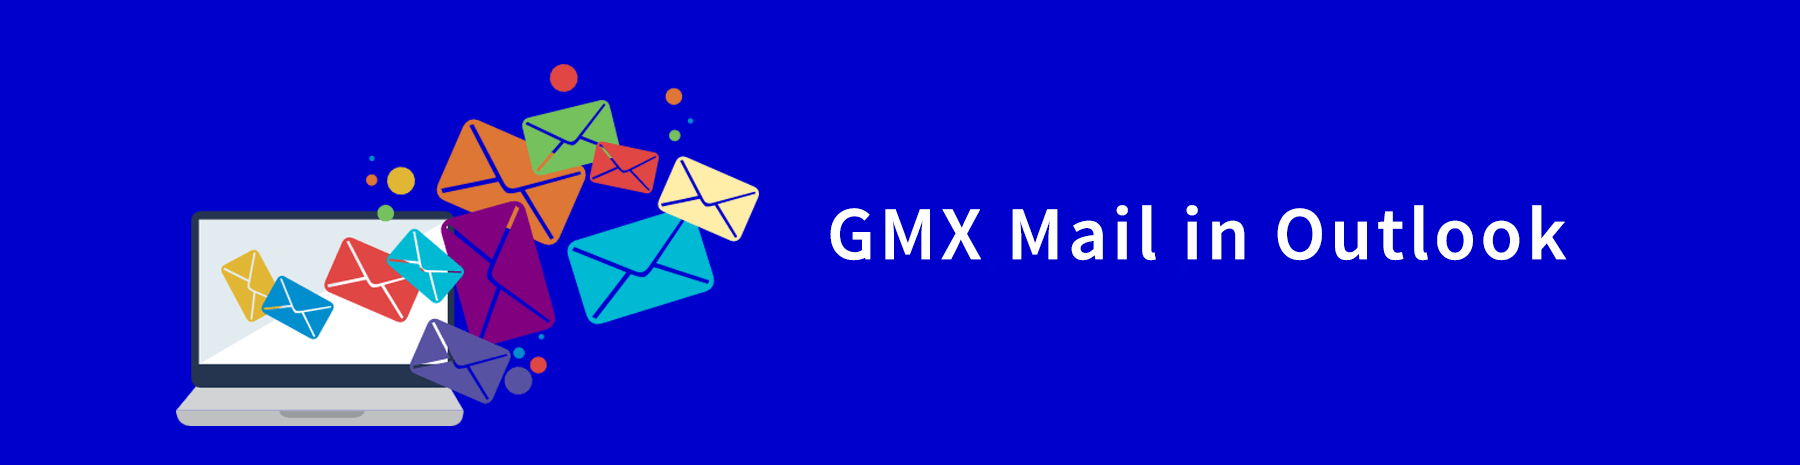 GMX Mail in Outlook